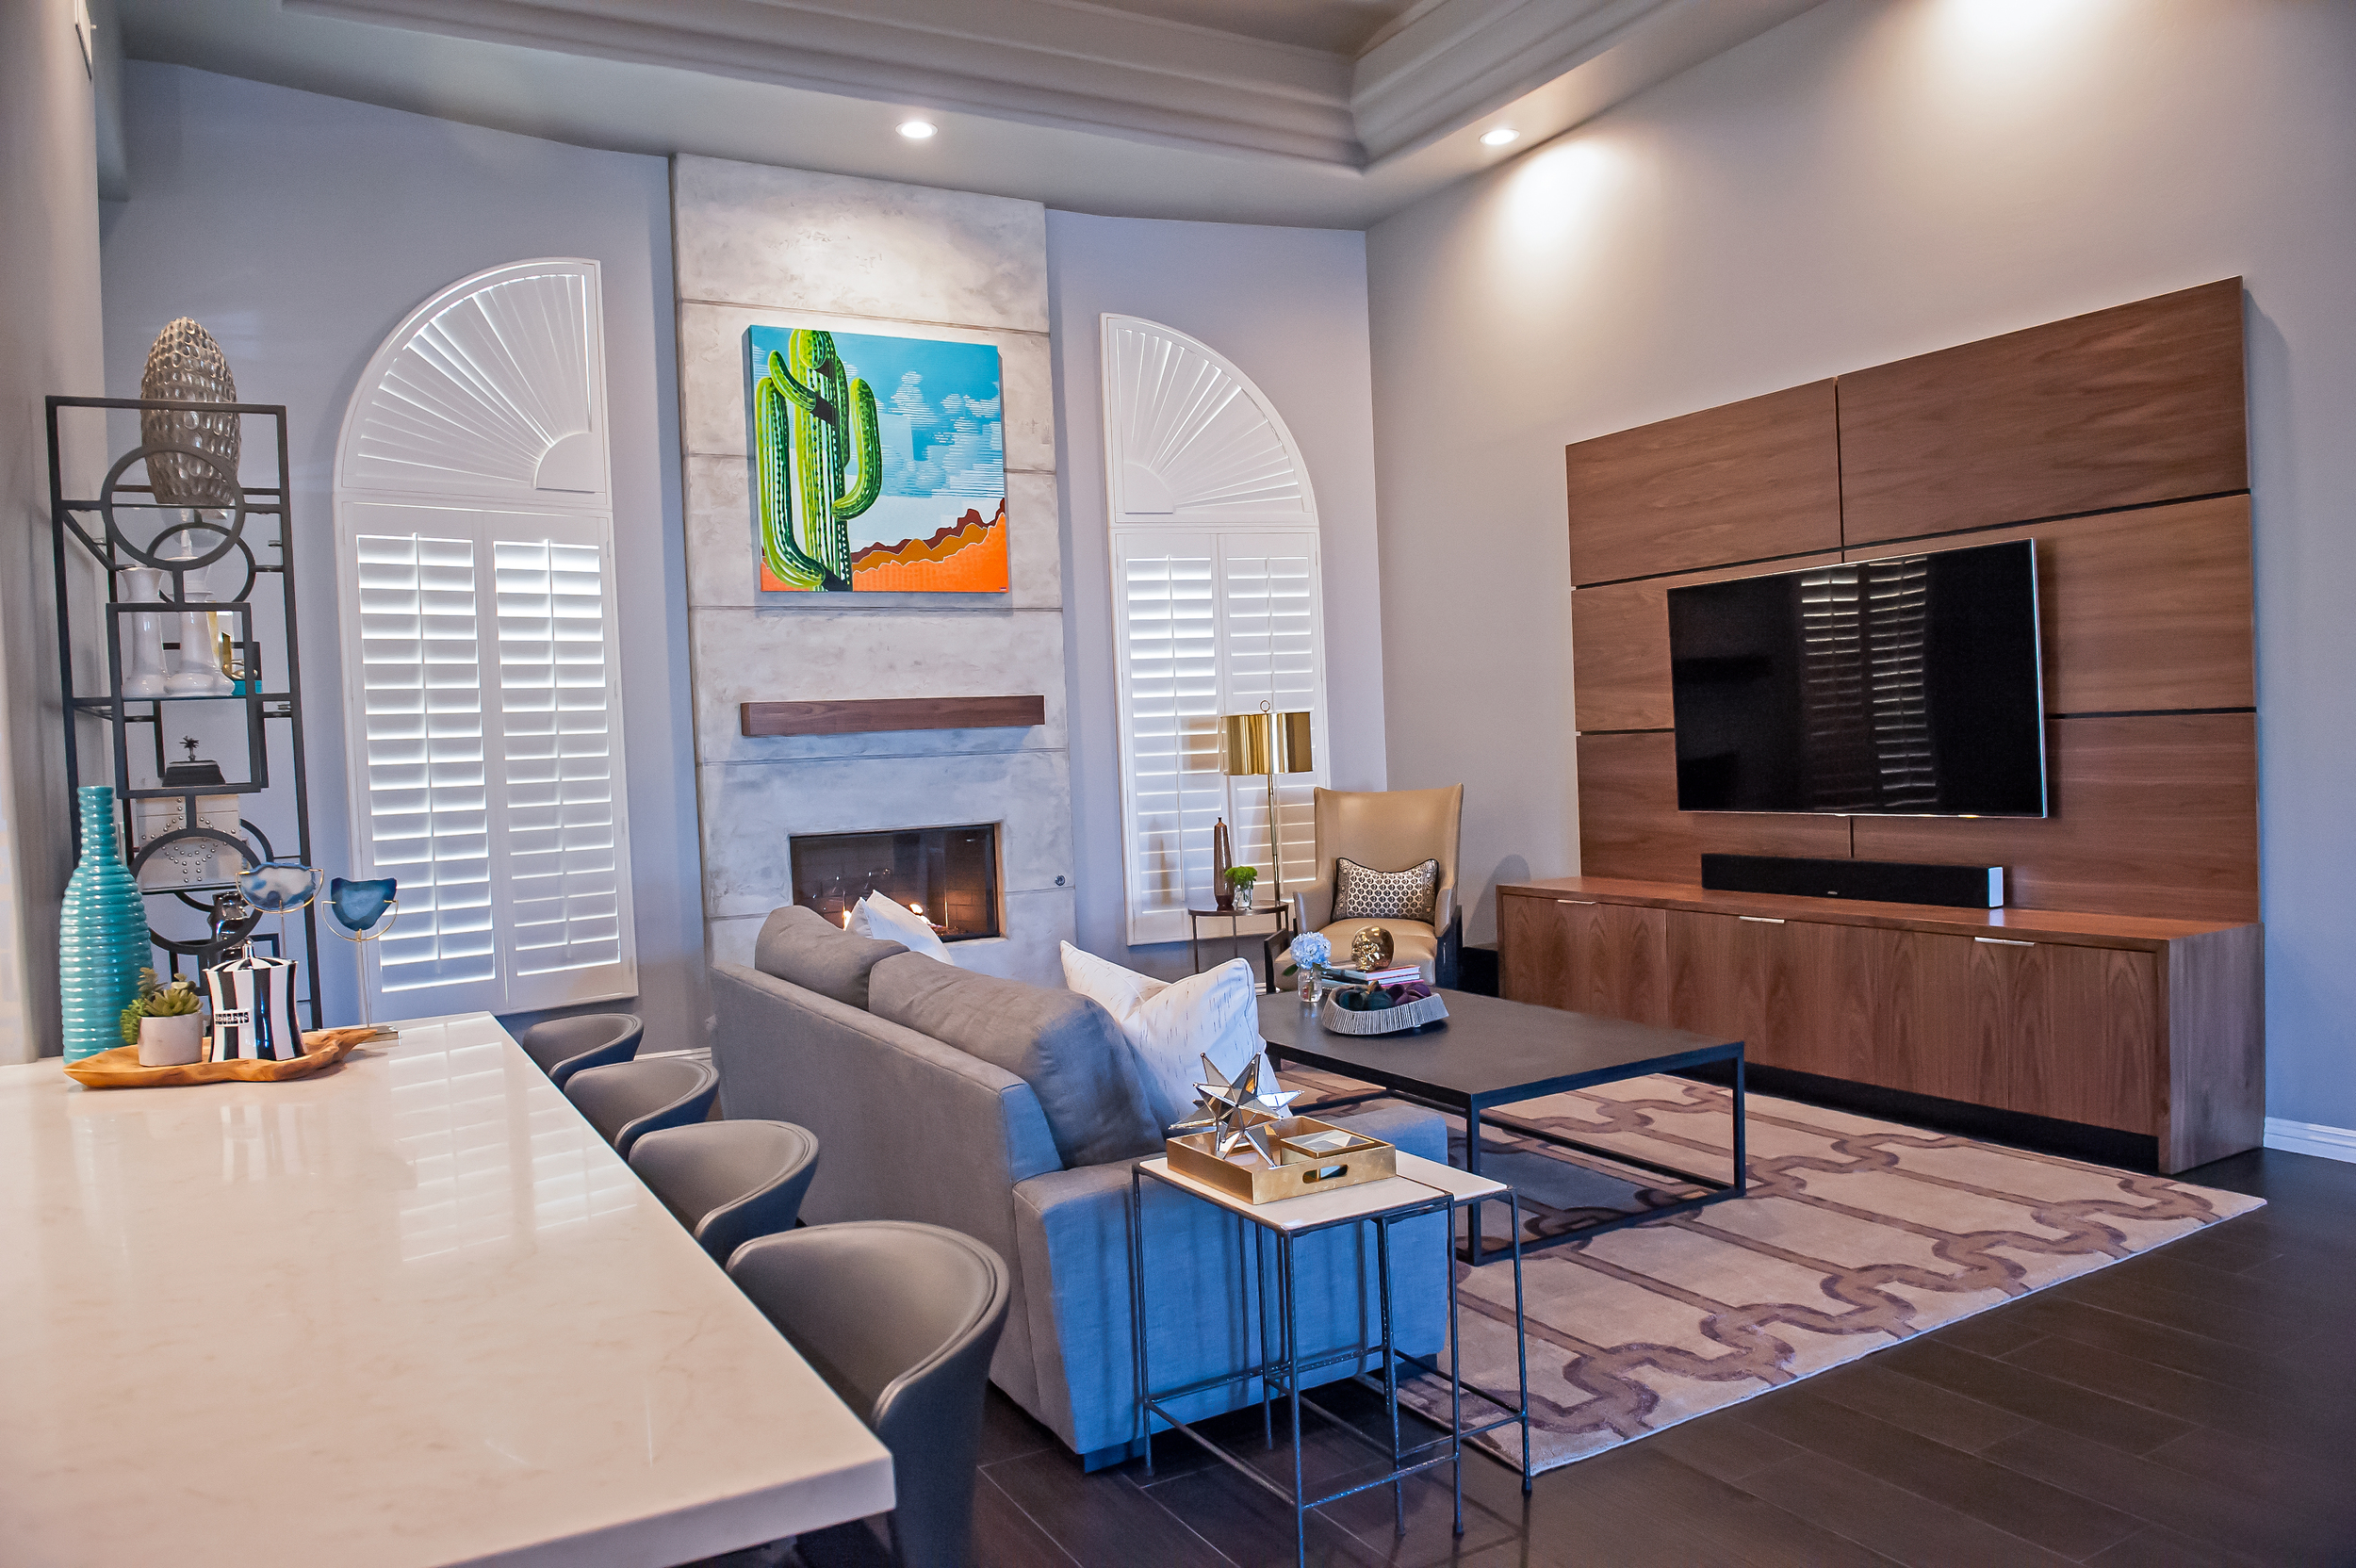 After, Bold Living Room with Custom Fireplace and Entertainment Center